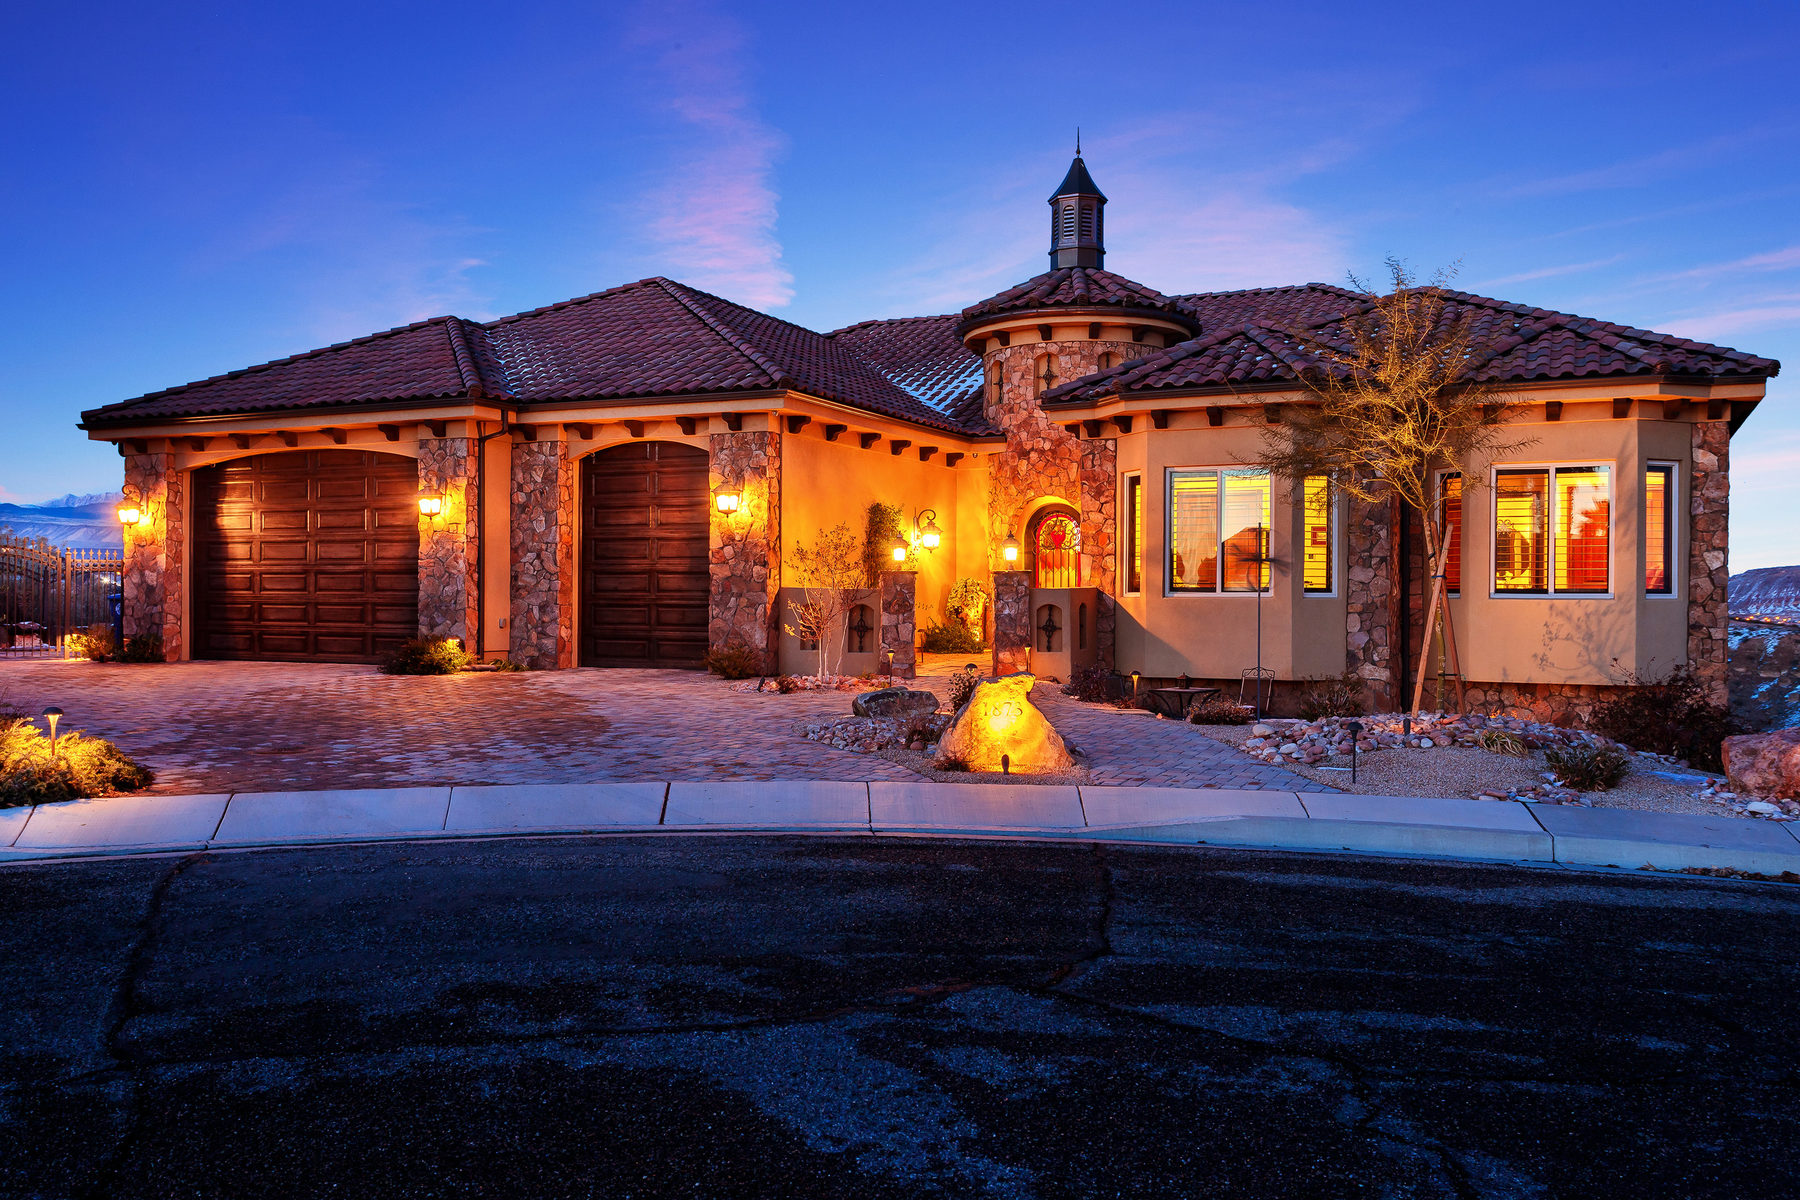 Single Family Home for Sale at Resort Living with Sweeping Views 1873 E 970 South Circle St. George, Utah, 84790 United States